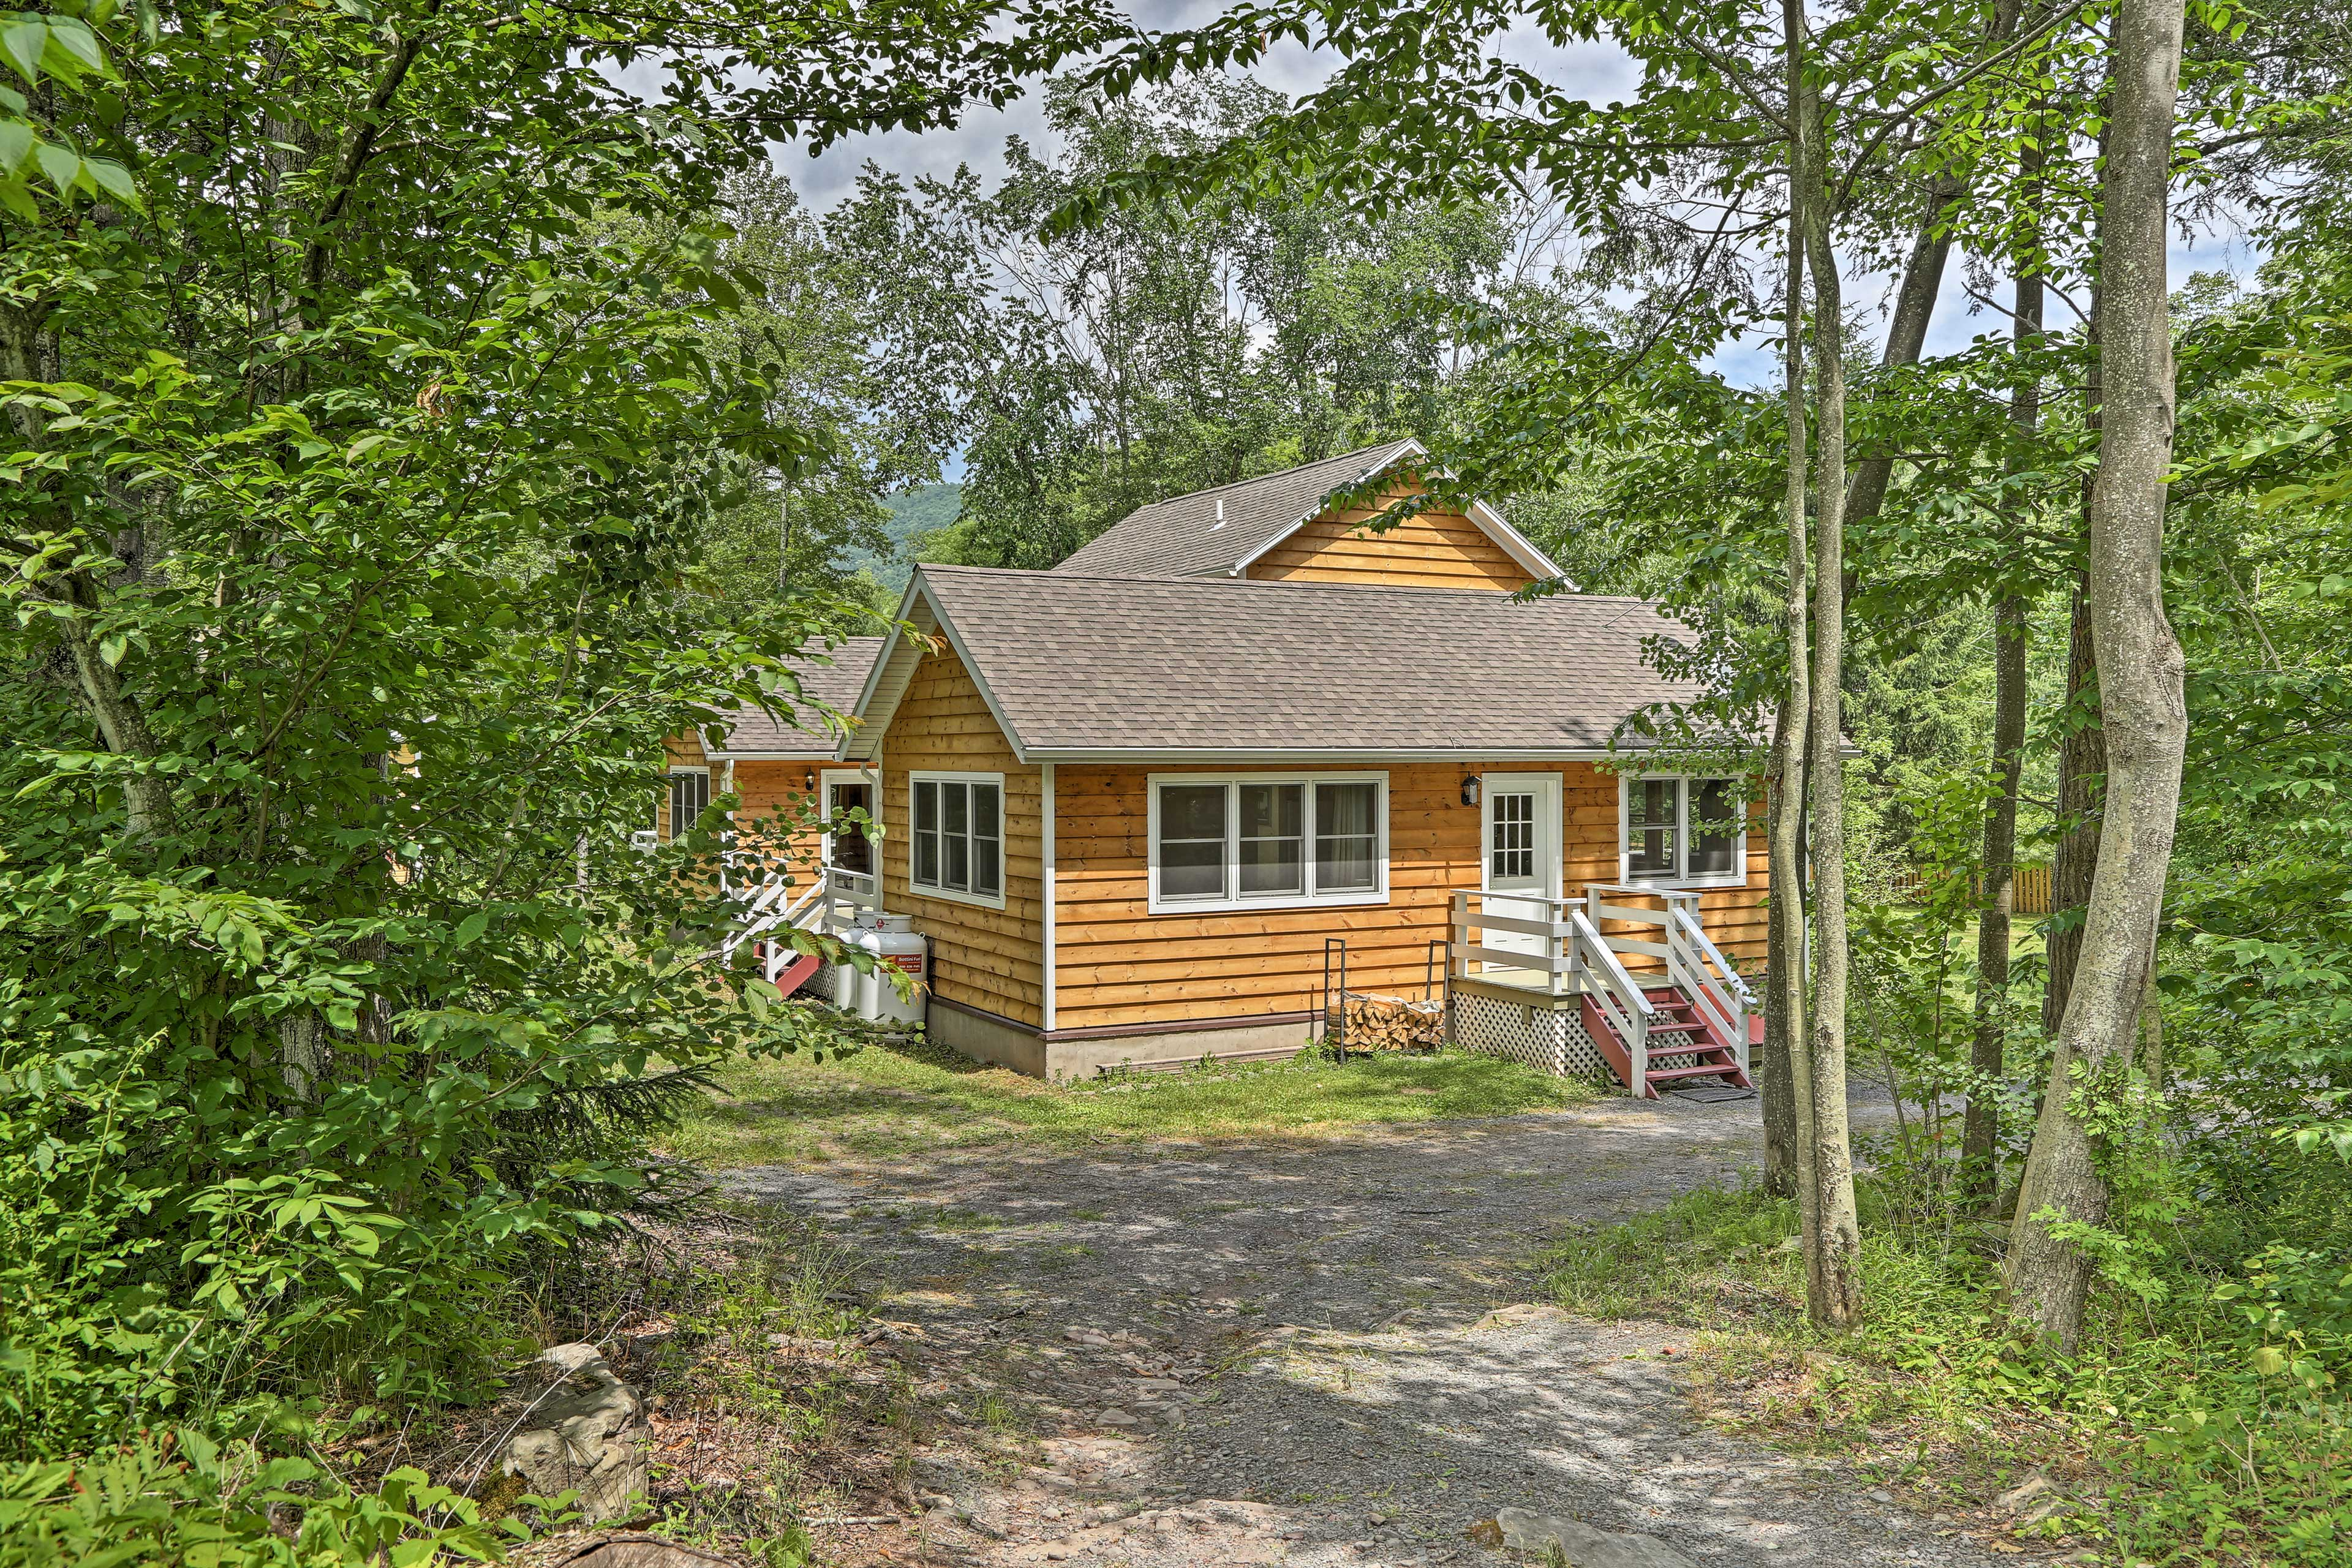 Discover this home nestled amid the woods.